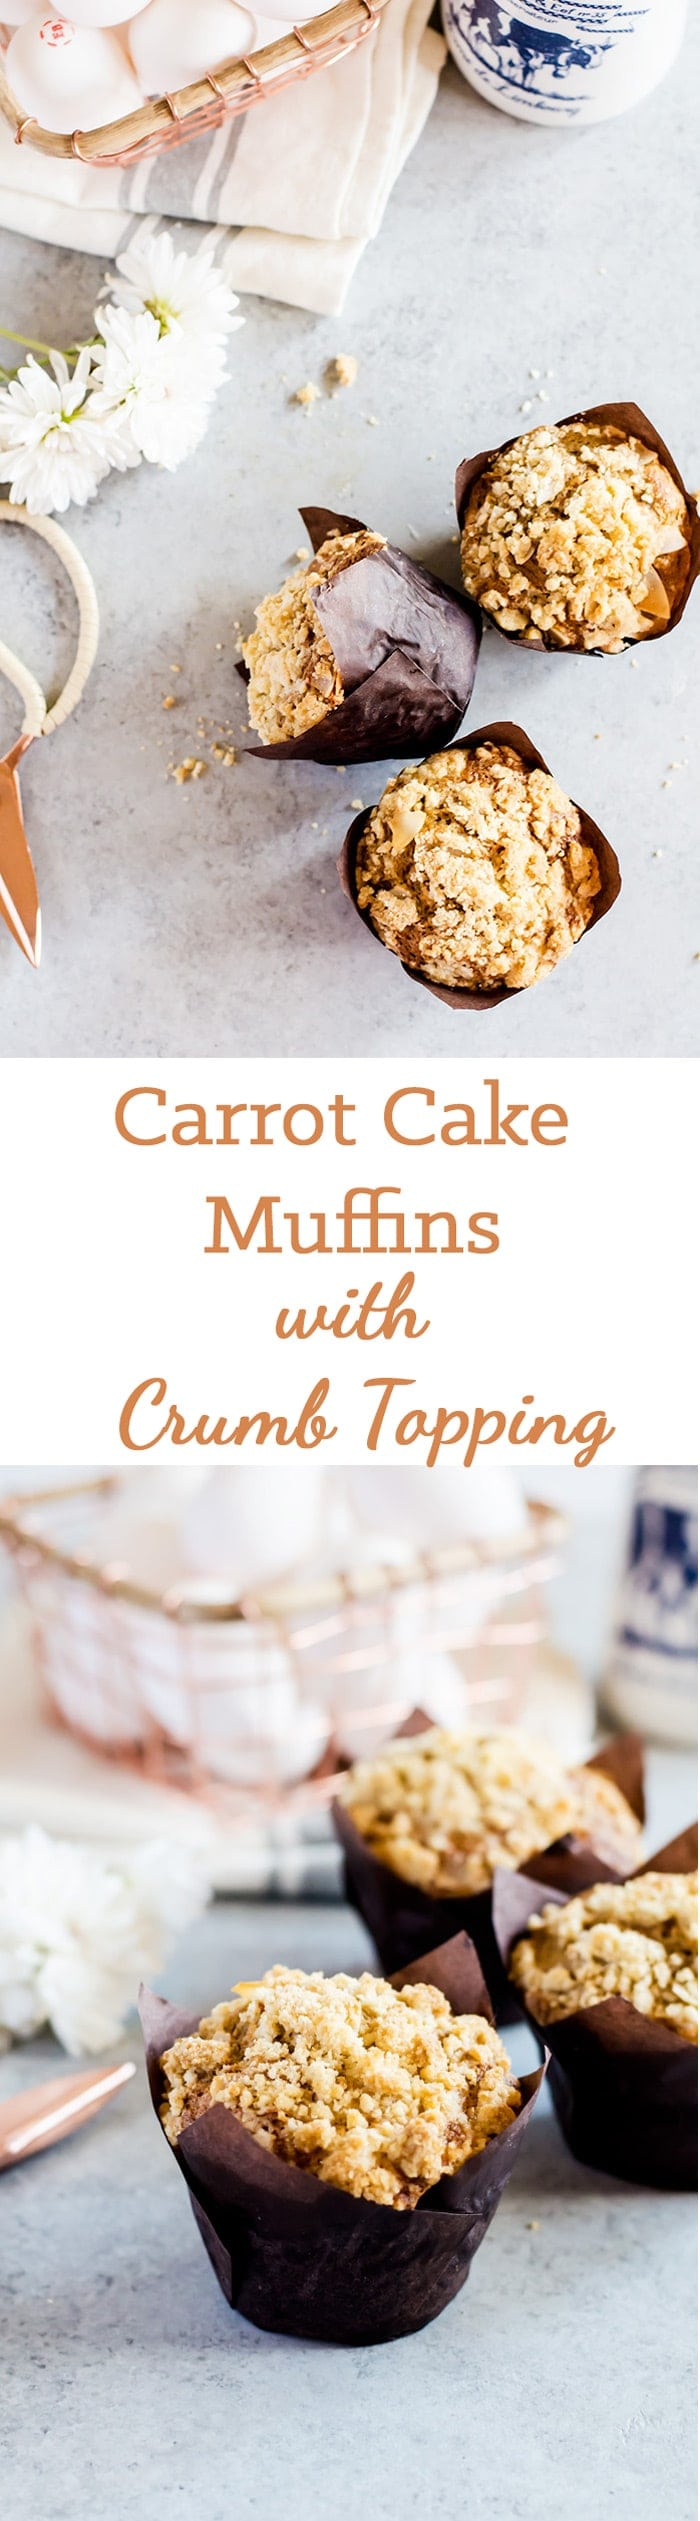 Lightly sweet and fully fluffy carrot cake muffins with crumb topping